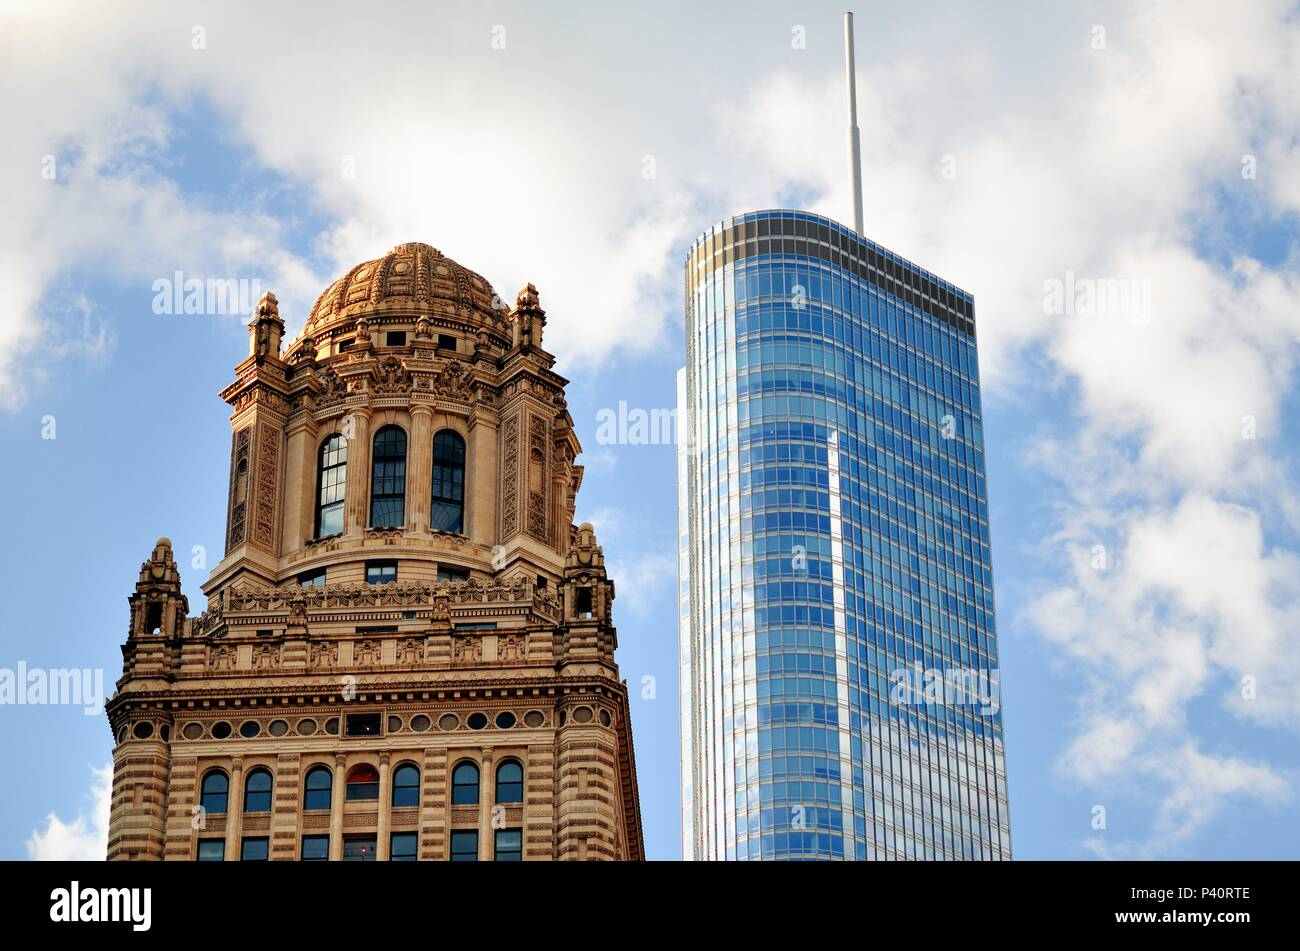 Chicago, Illinois, USA. The tops of two contrasting architectural styles and eras in Chicago that show its diversity and variety of architecture. - Stock Image